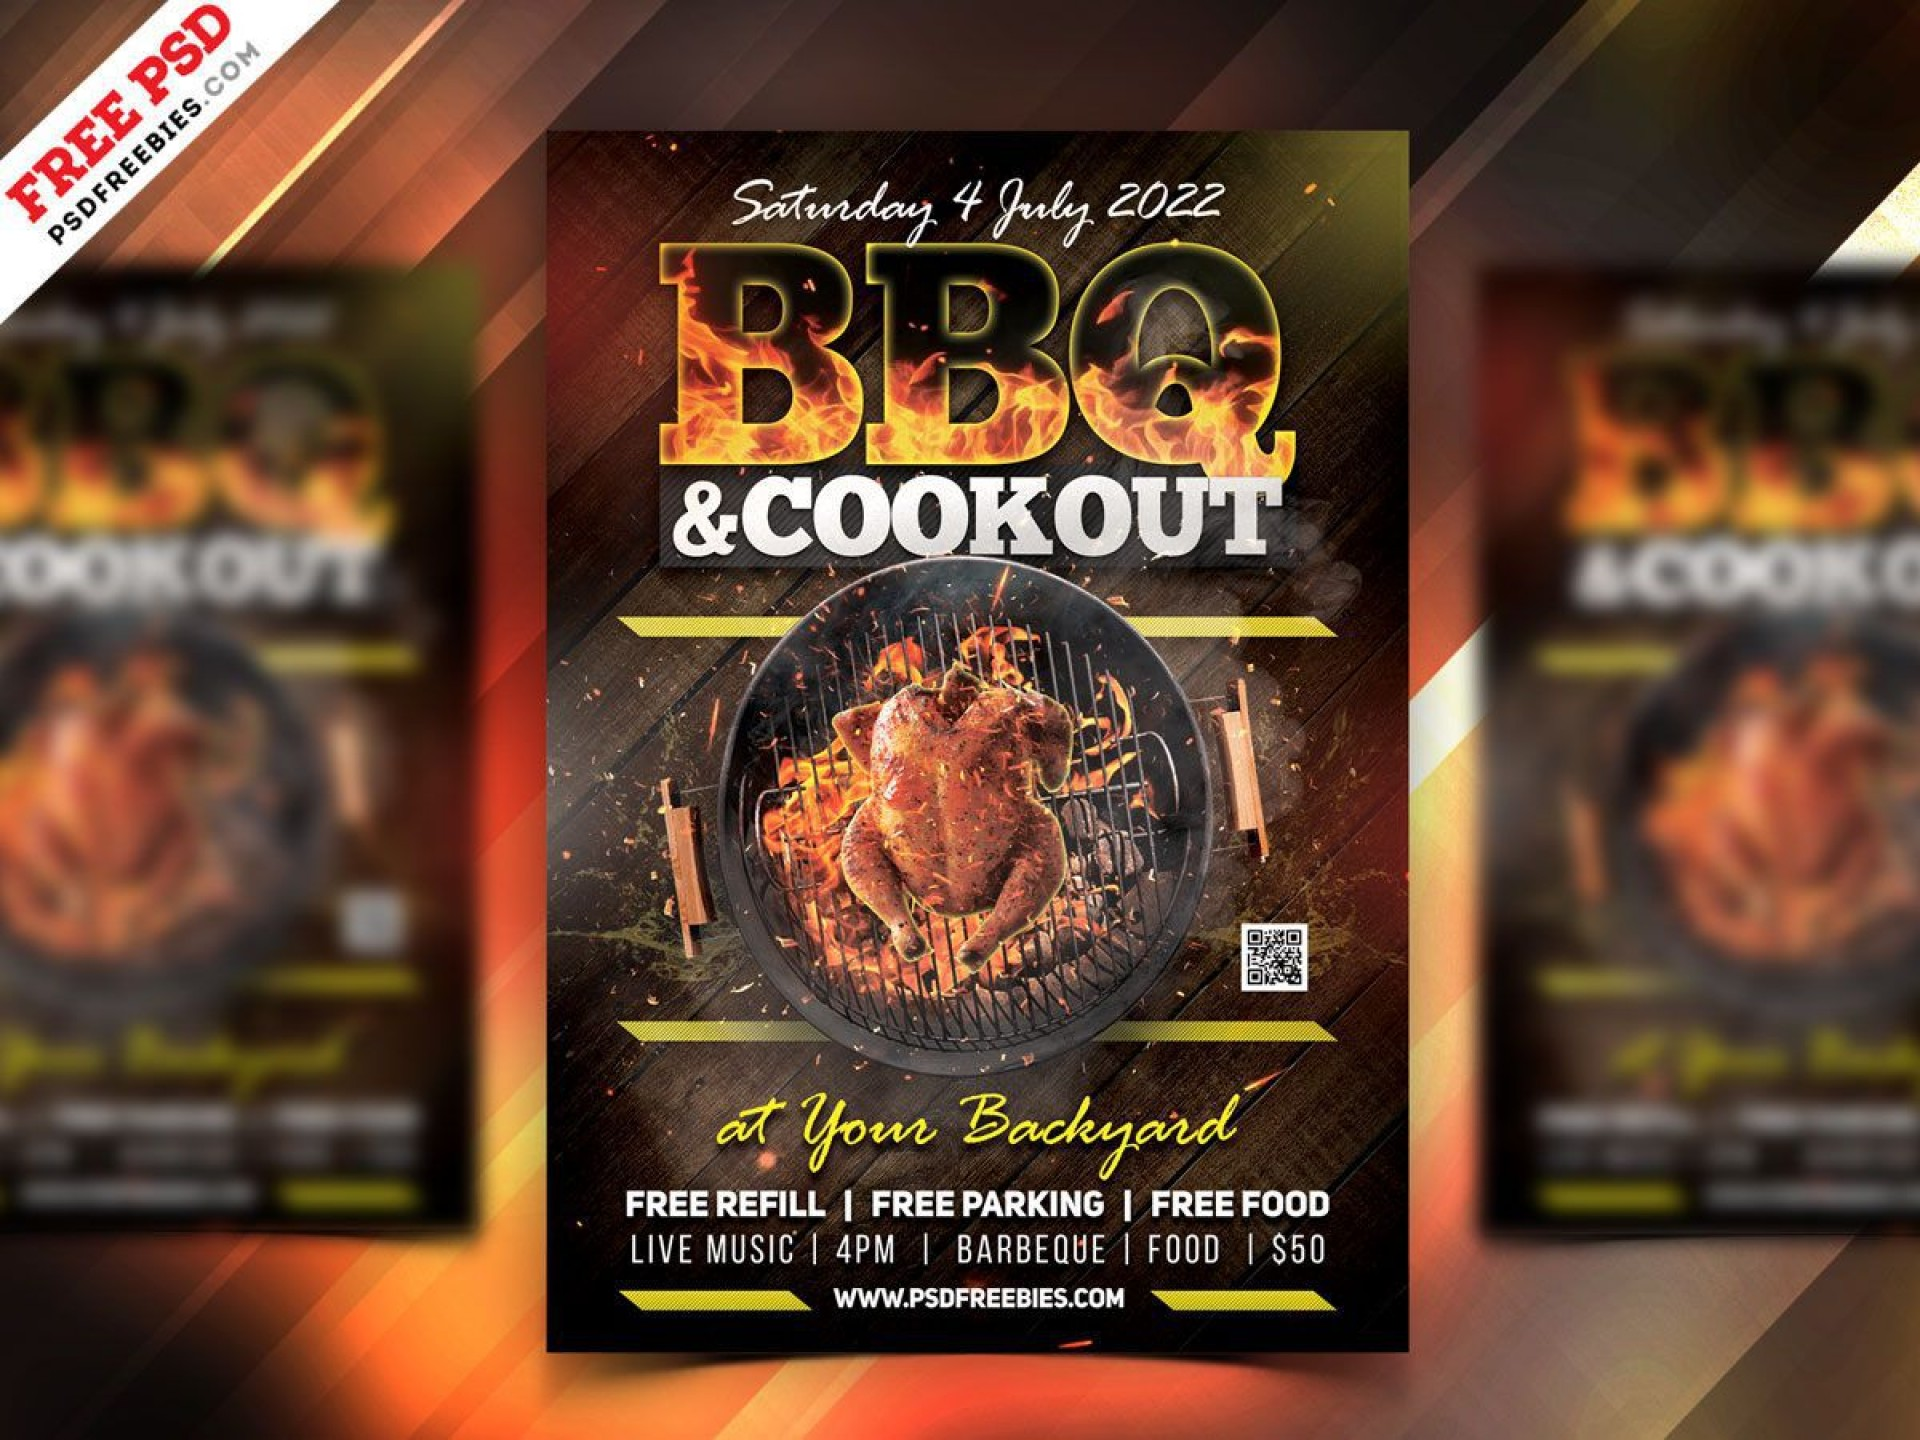 002 Surprising Party Flyer Psd Template Free Download Image  Rave1920